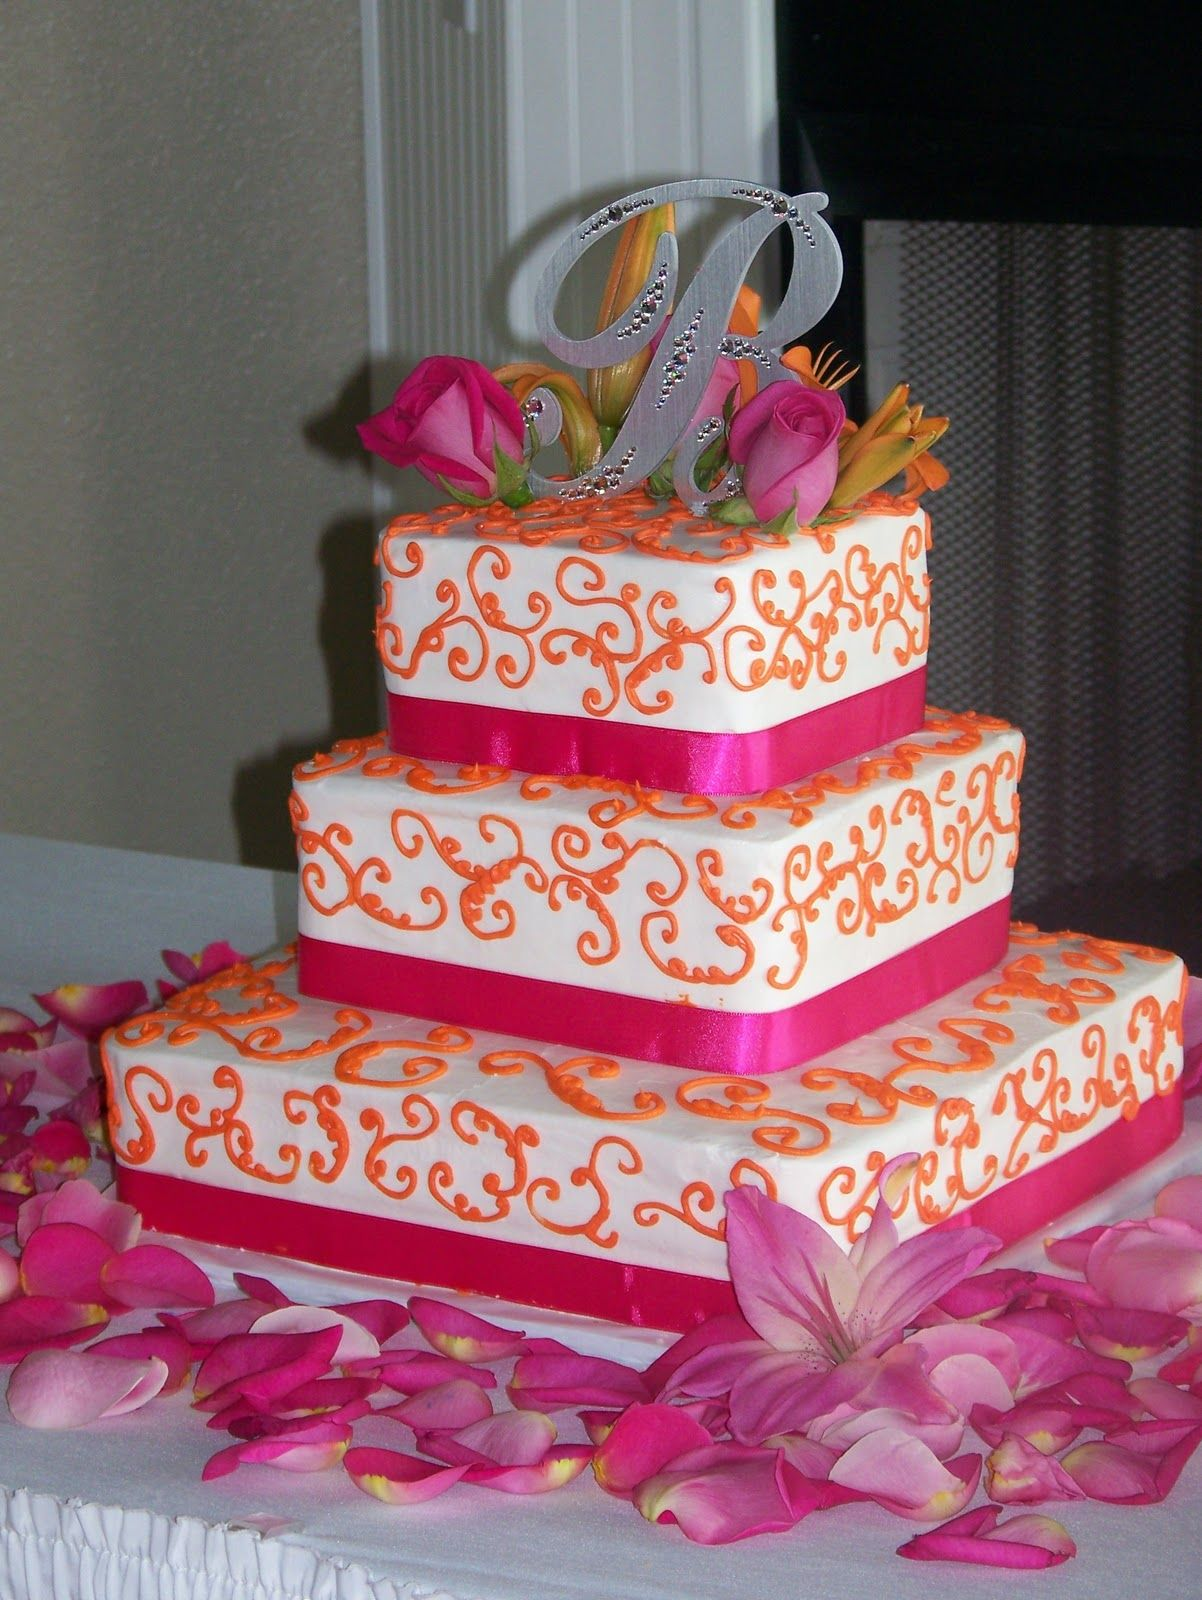 Pin by T Johnson on wedding cakes in 2018 | Pinterest | Pink orange ...